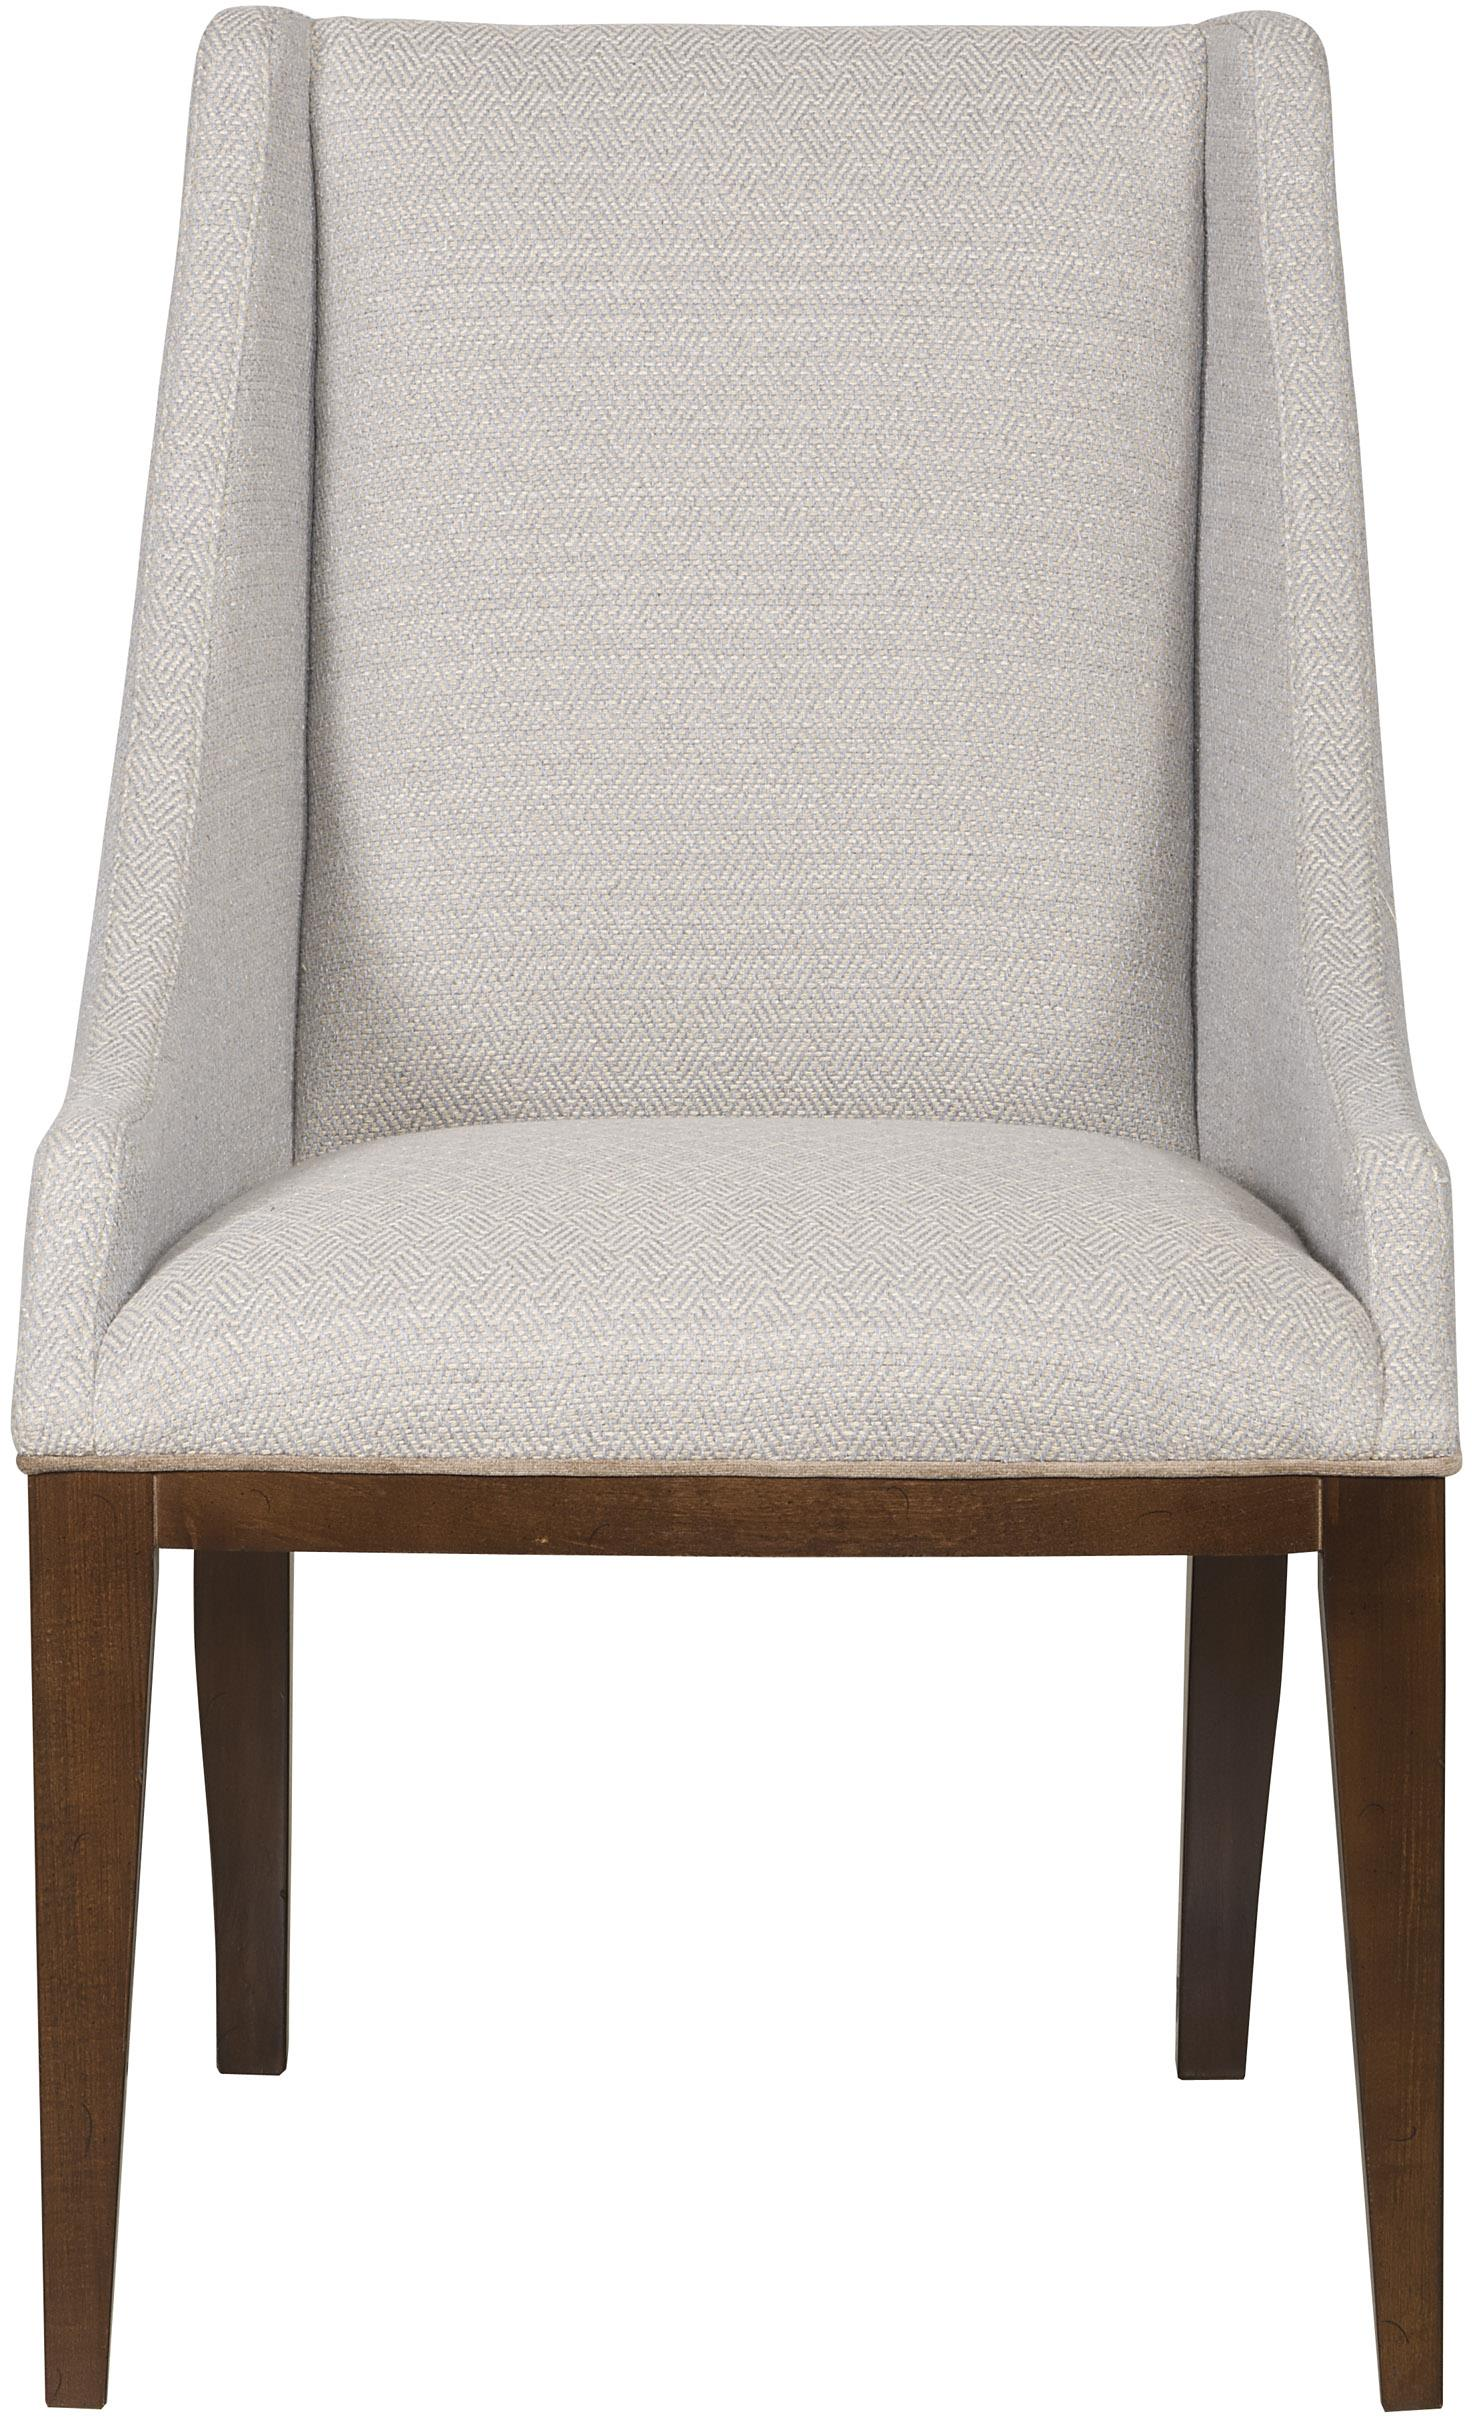 Thom Filicia Home Collection Ithaca Dining Arm Chair by Vanguard Furniture at Baer's Furniture